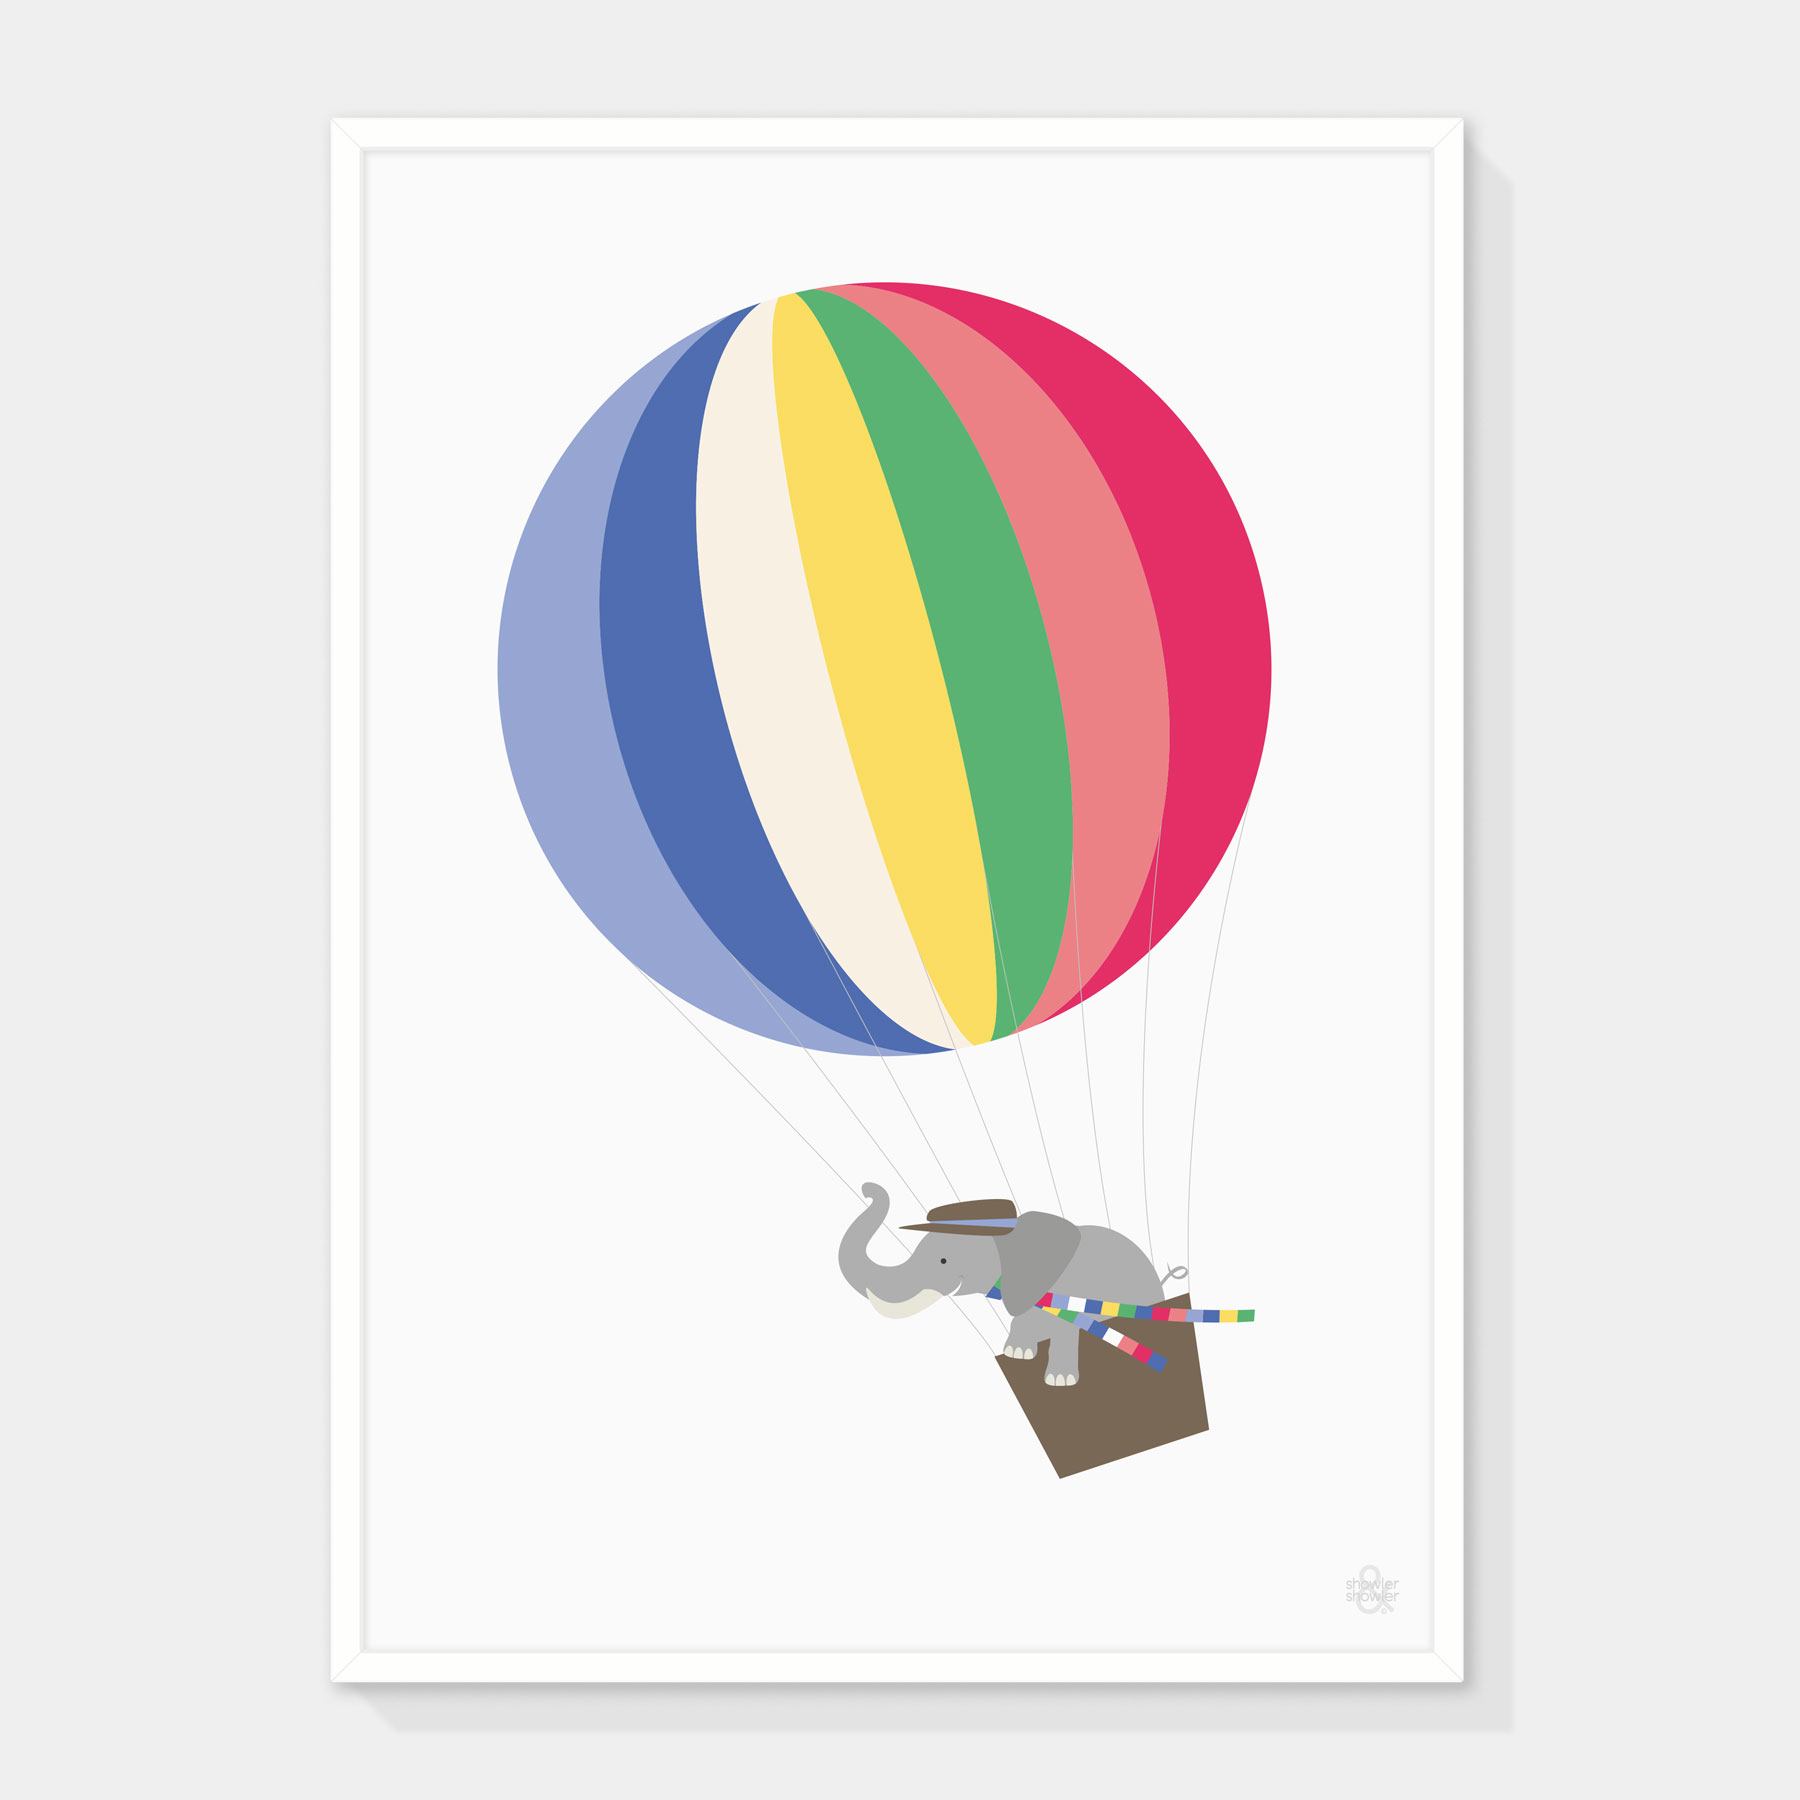 Elephant-&-Balloon-Framed.jpg